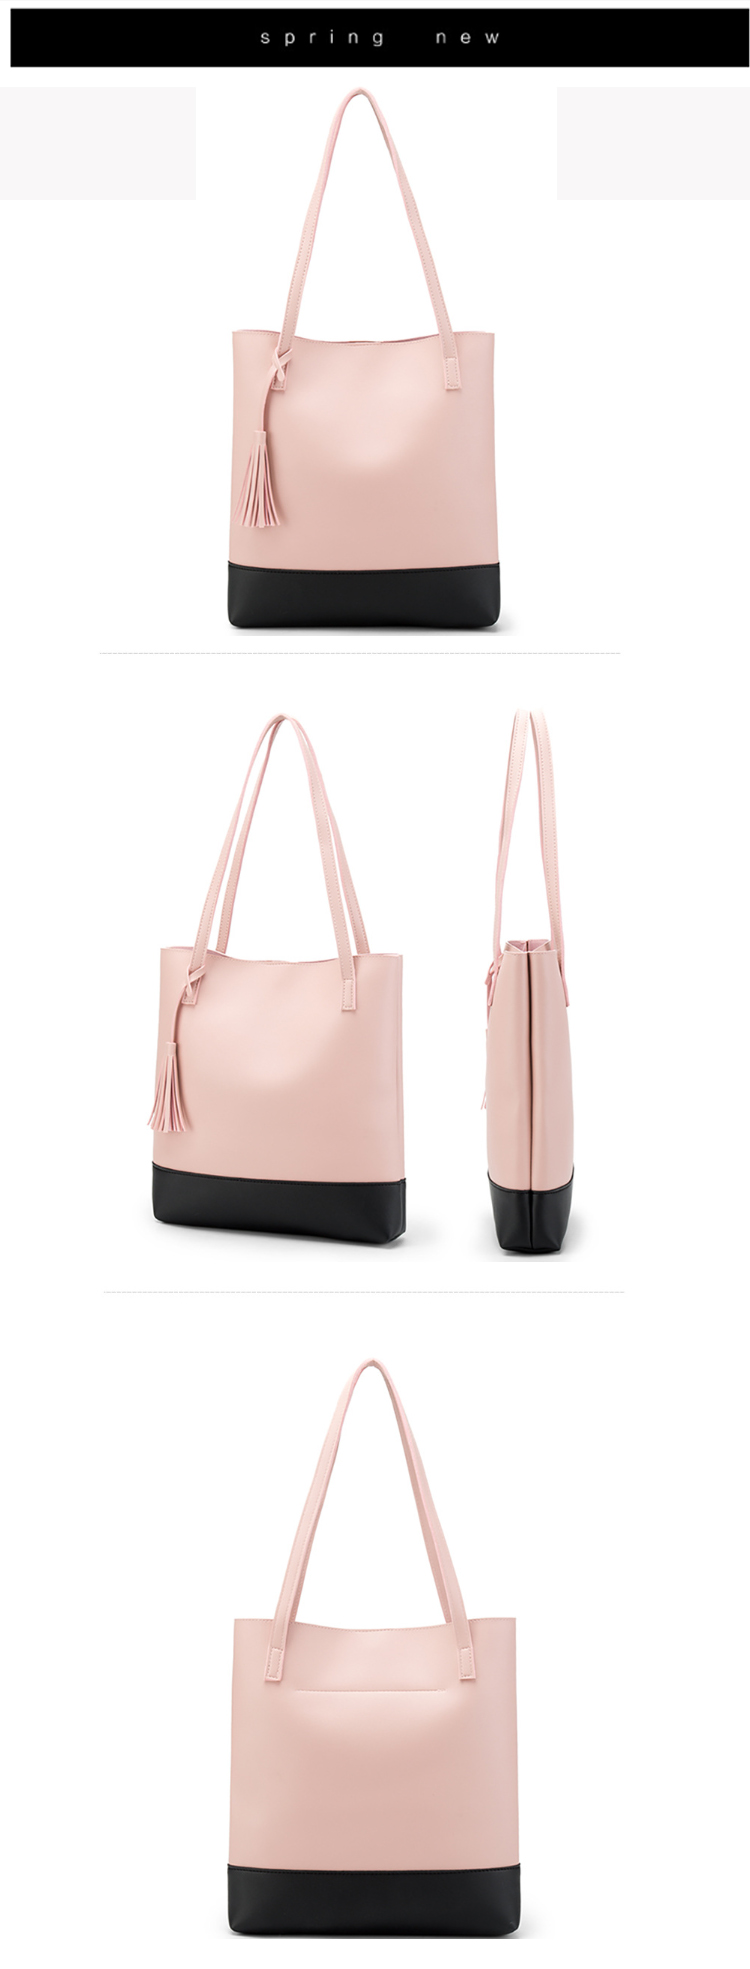 Osgoodway2 Latest Fashion Official Leather Tote Handbags Bags Women PU Shoulder Bag